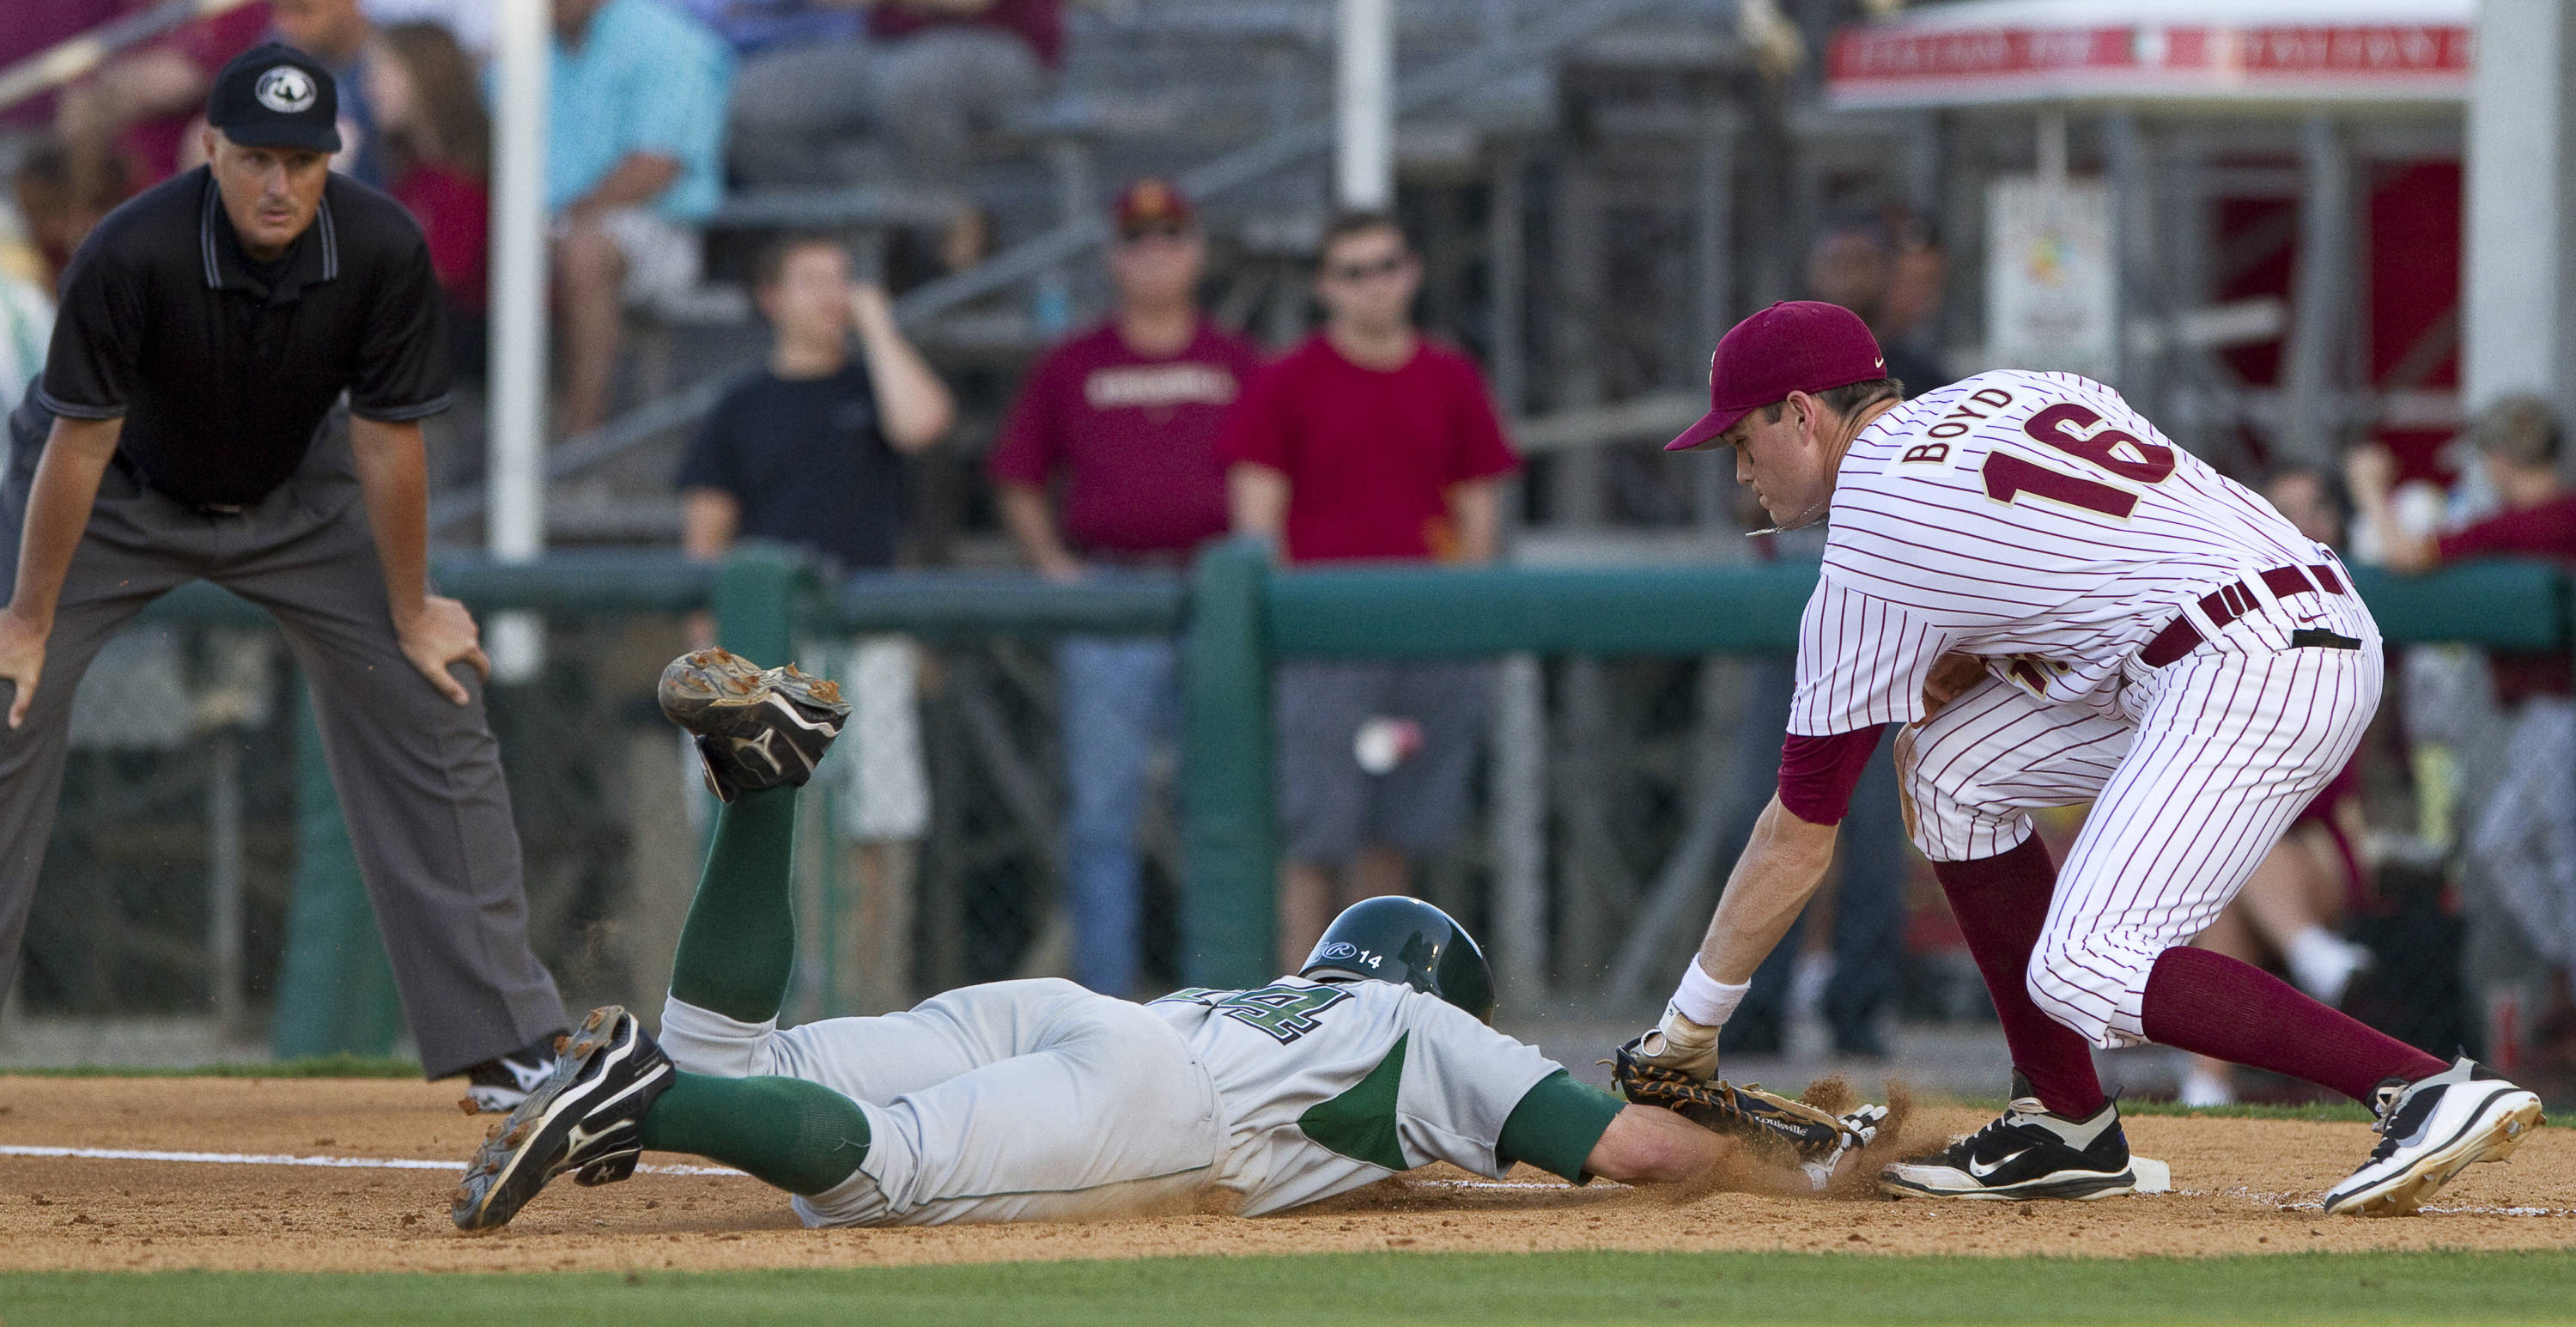 Jayce Boyd (16) tags out a runner from Stetson at first.